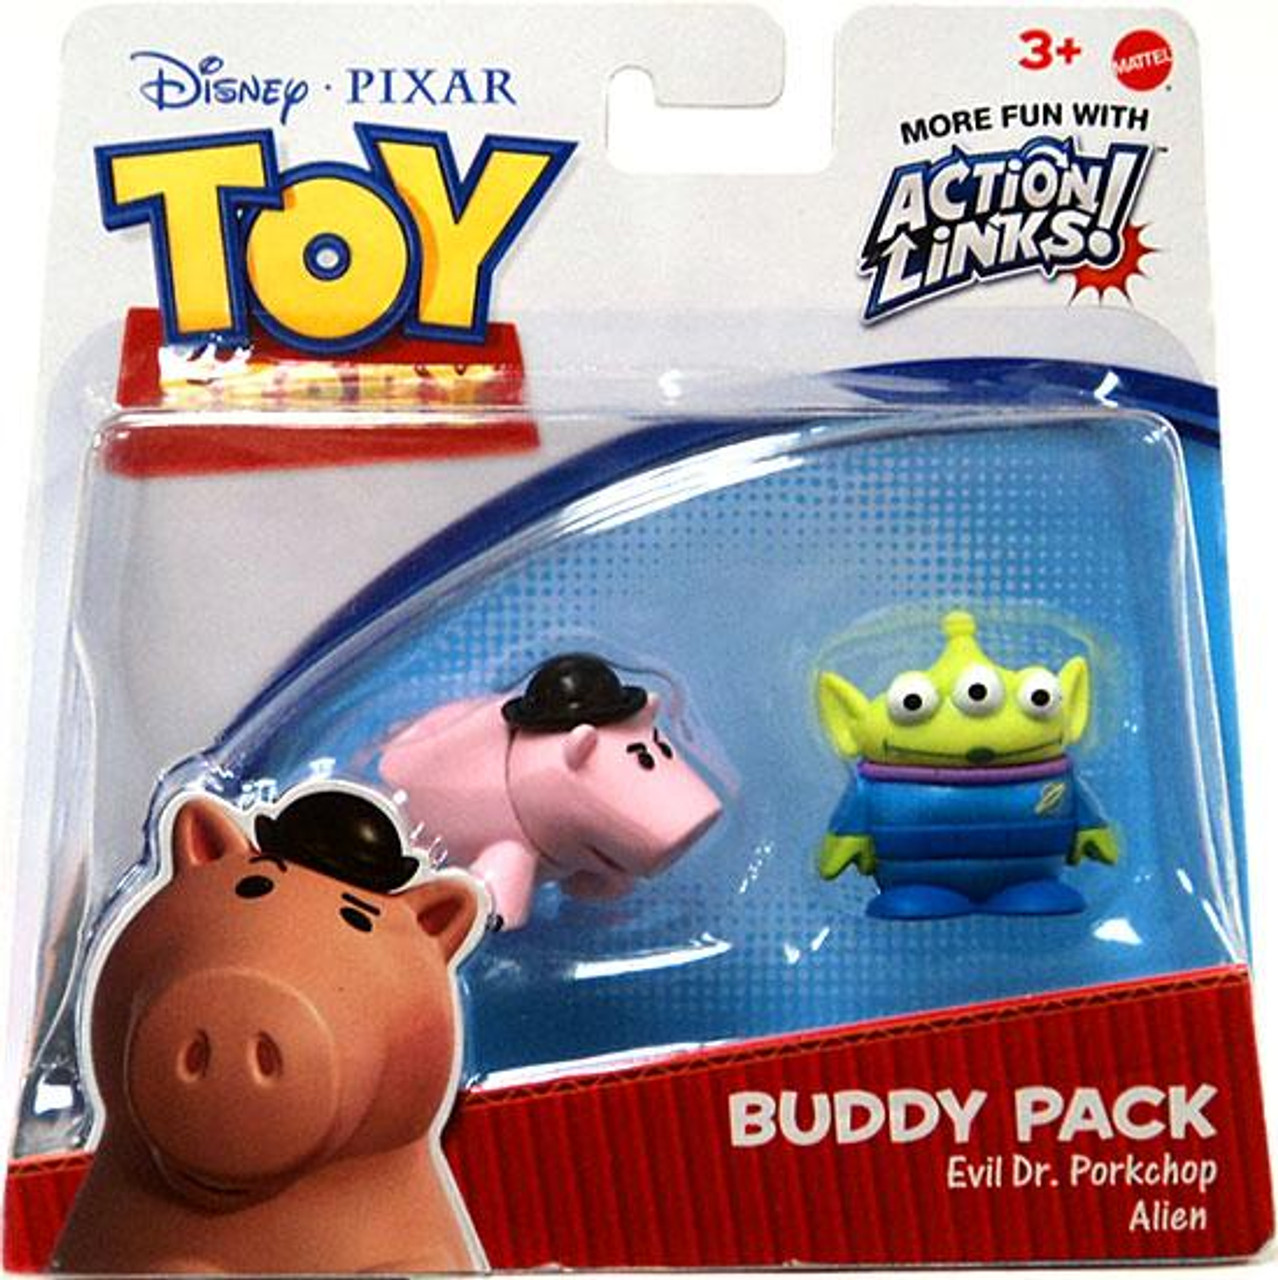 Toy Story Action Links Buddy Pack Evil Dr. Porkchop & Alien Exclusive Mini Figure 2-Pack